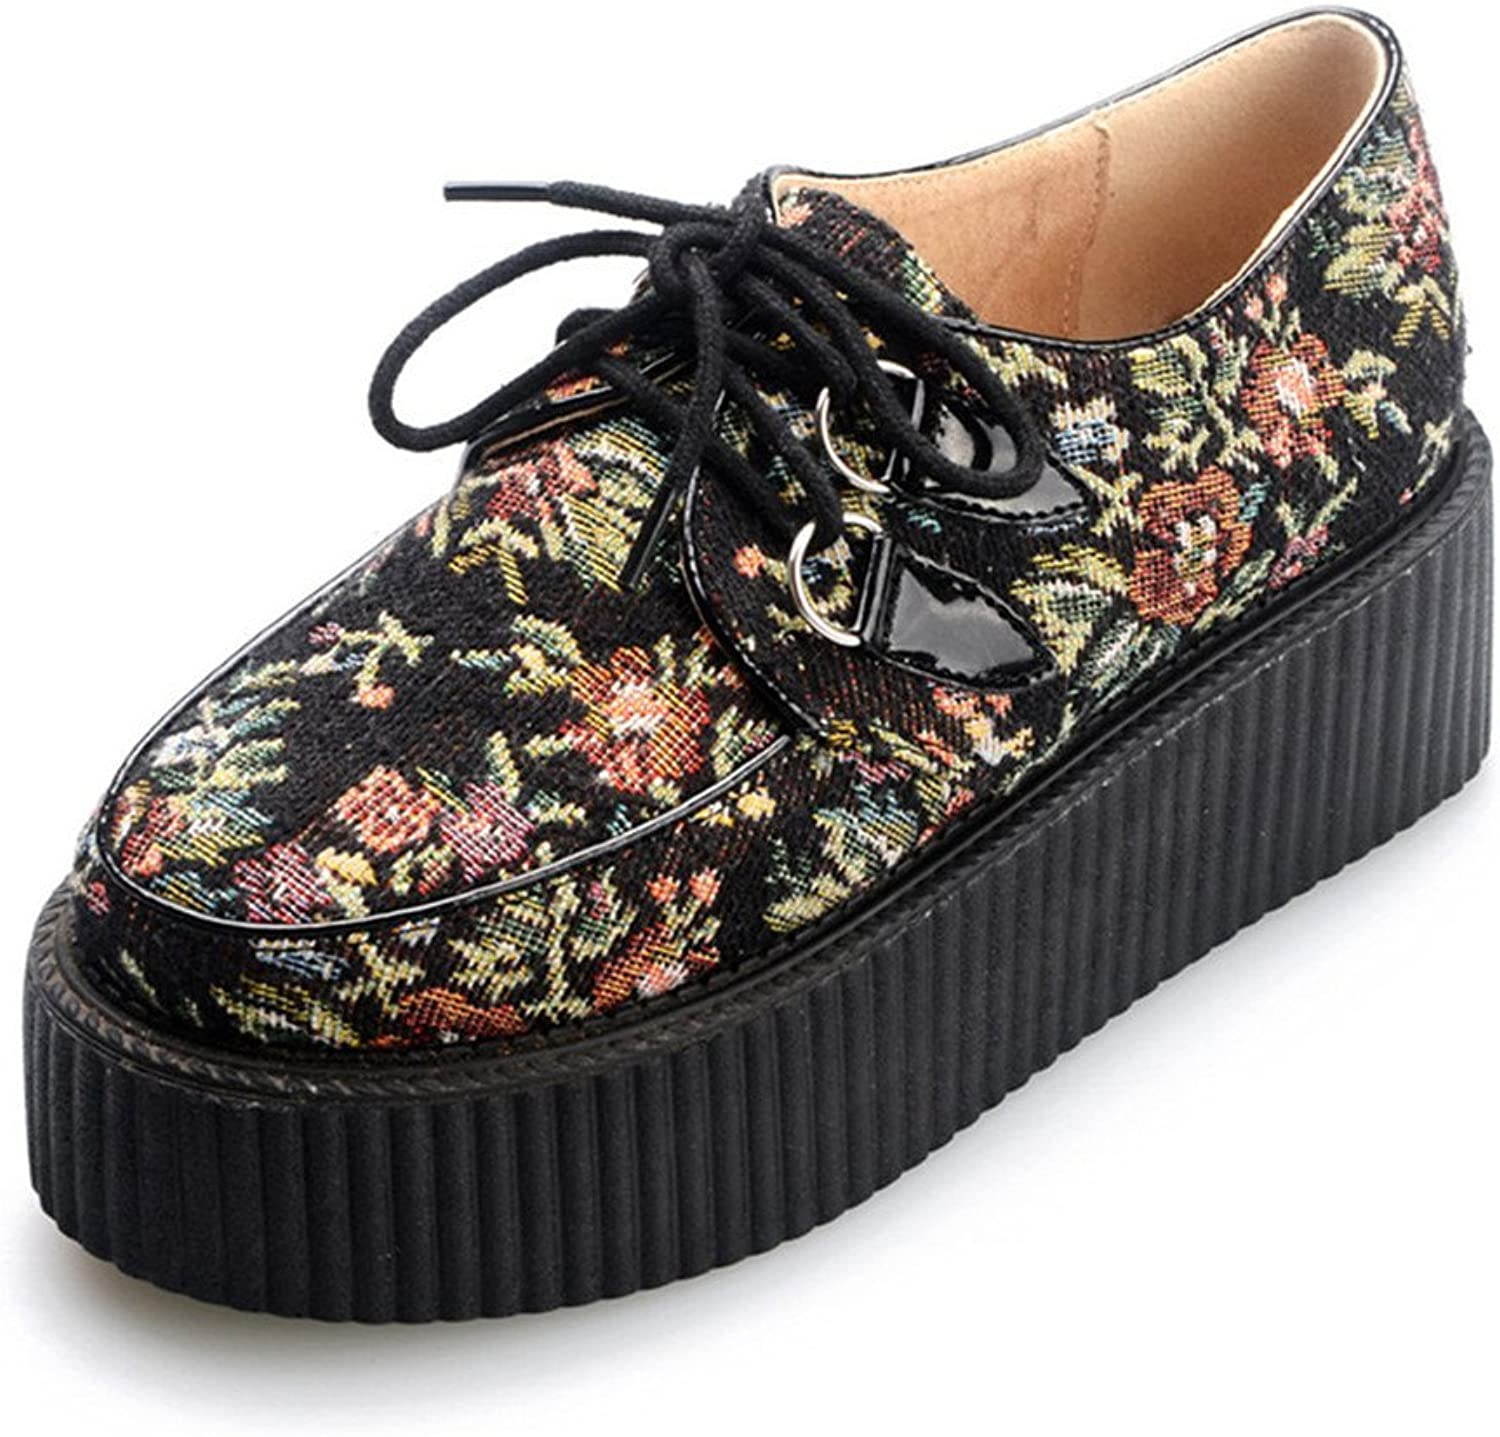 pinkG Women's Embroidered Flat Goth Punk canvas Creepers shoes